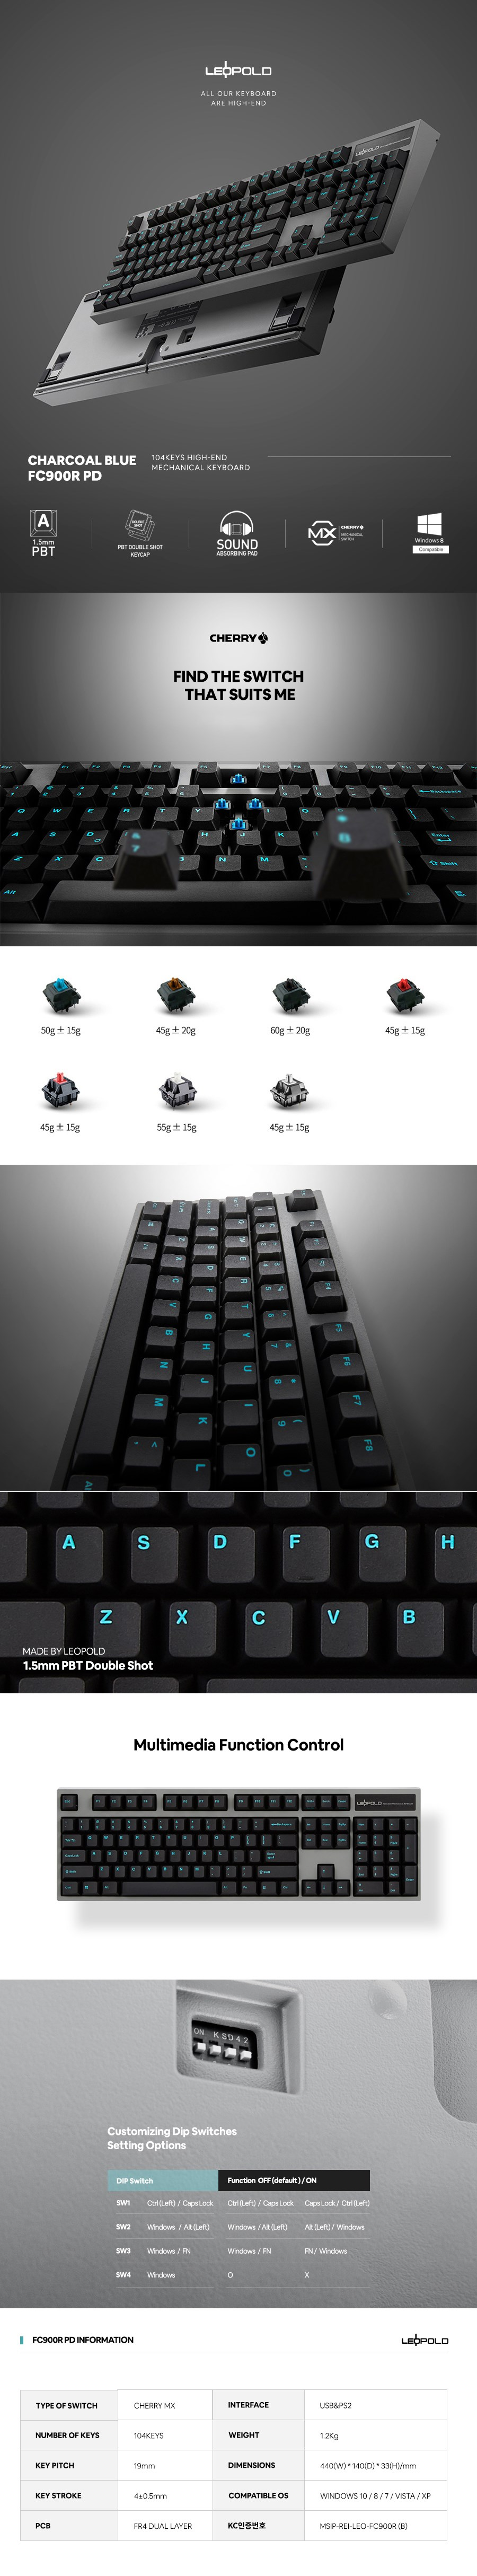 Leopold FC900R PD Charcoal/Blue Mechanical Keyboard - Overview 1